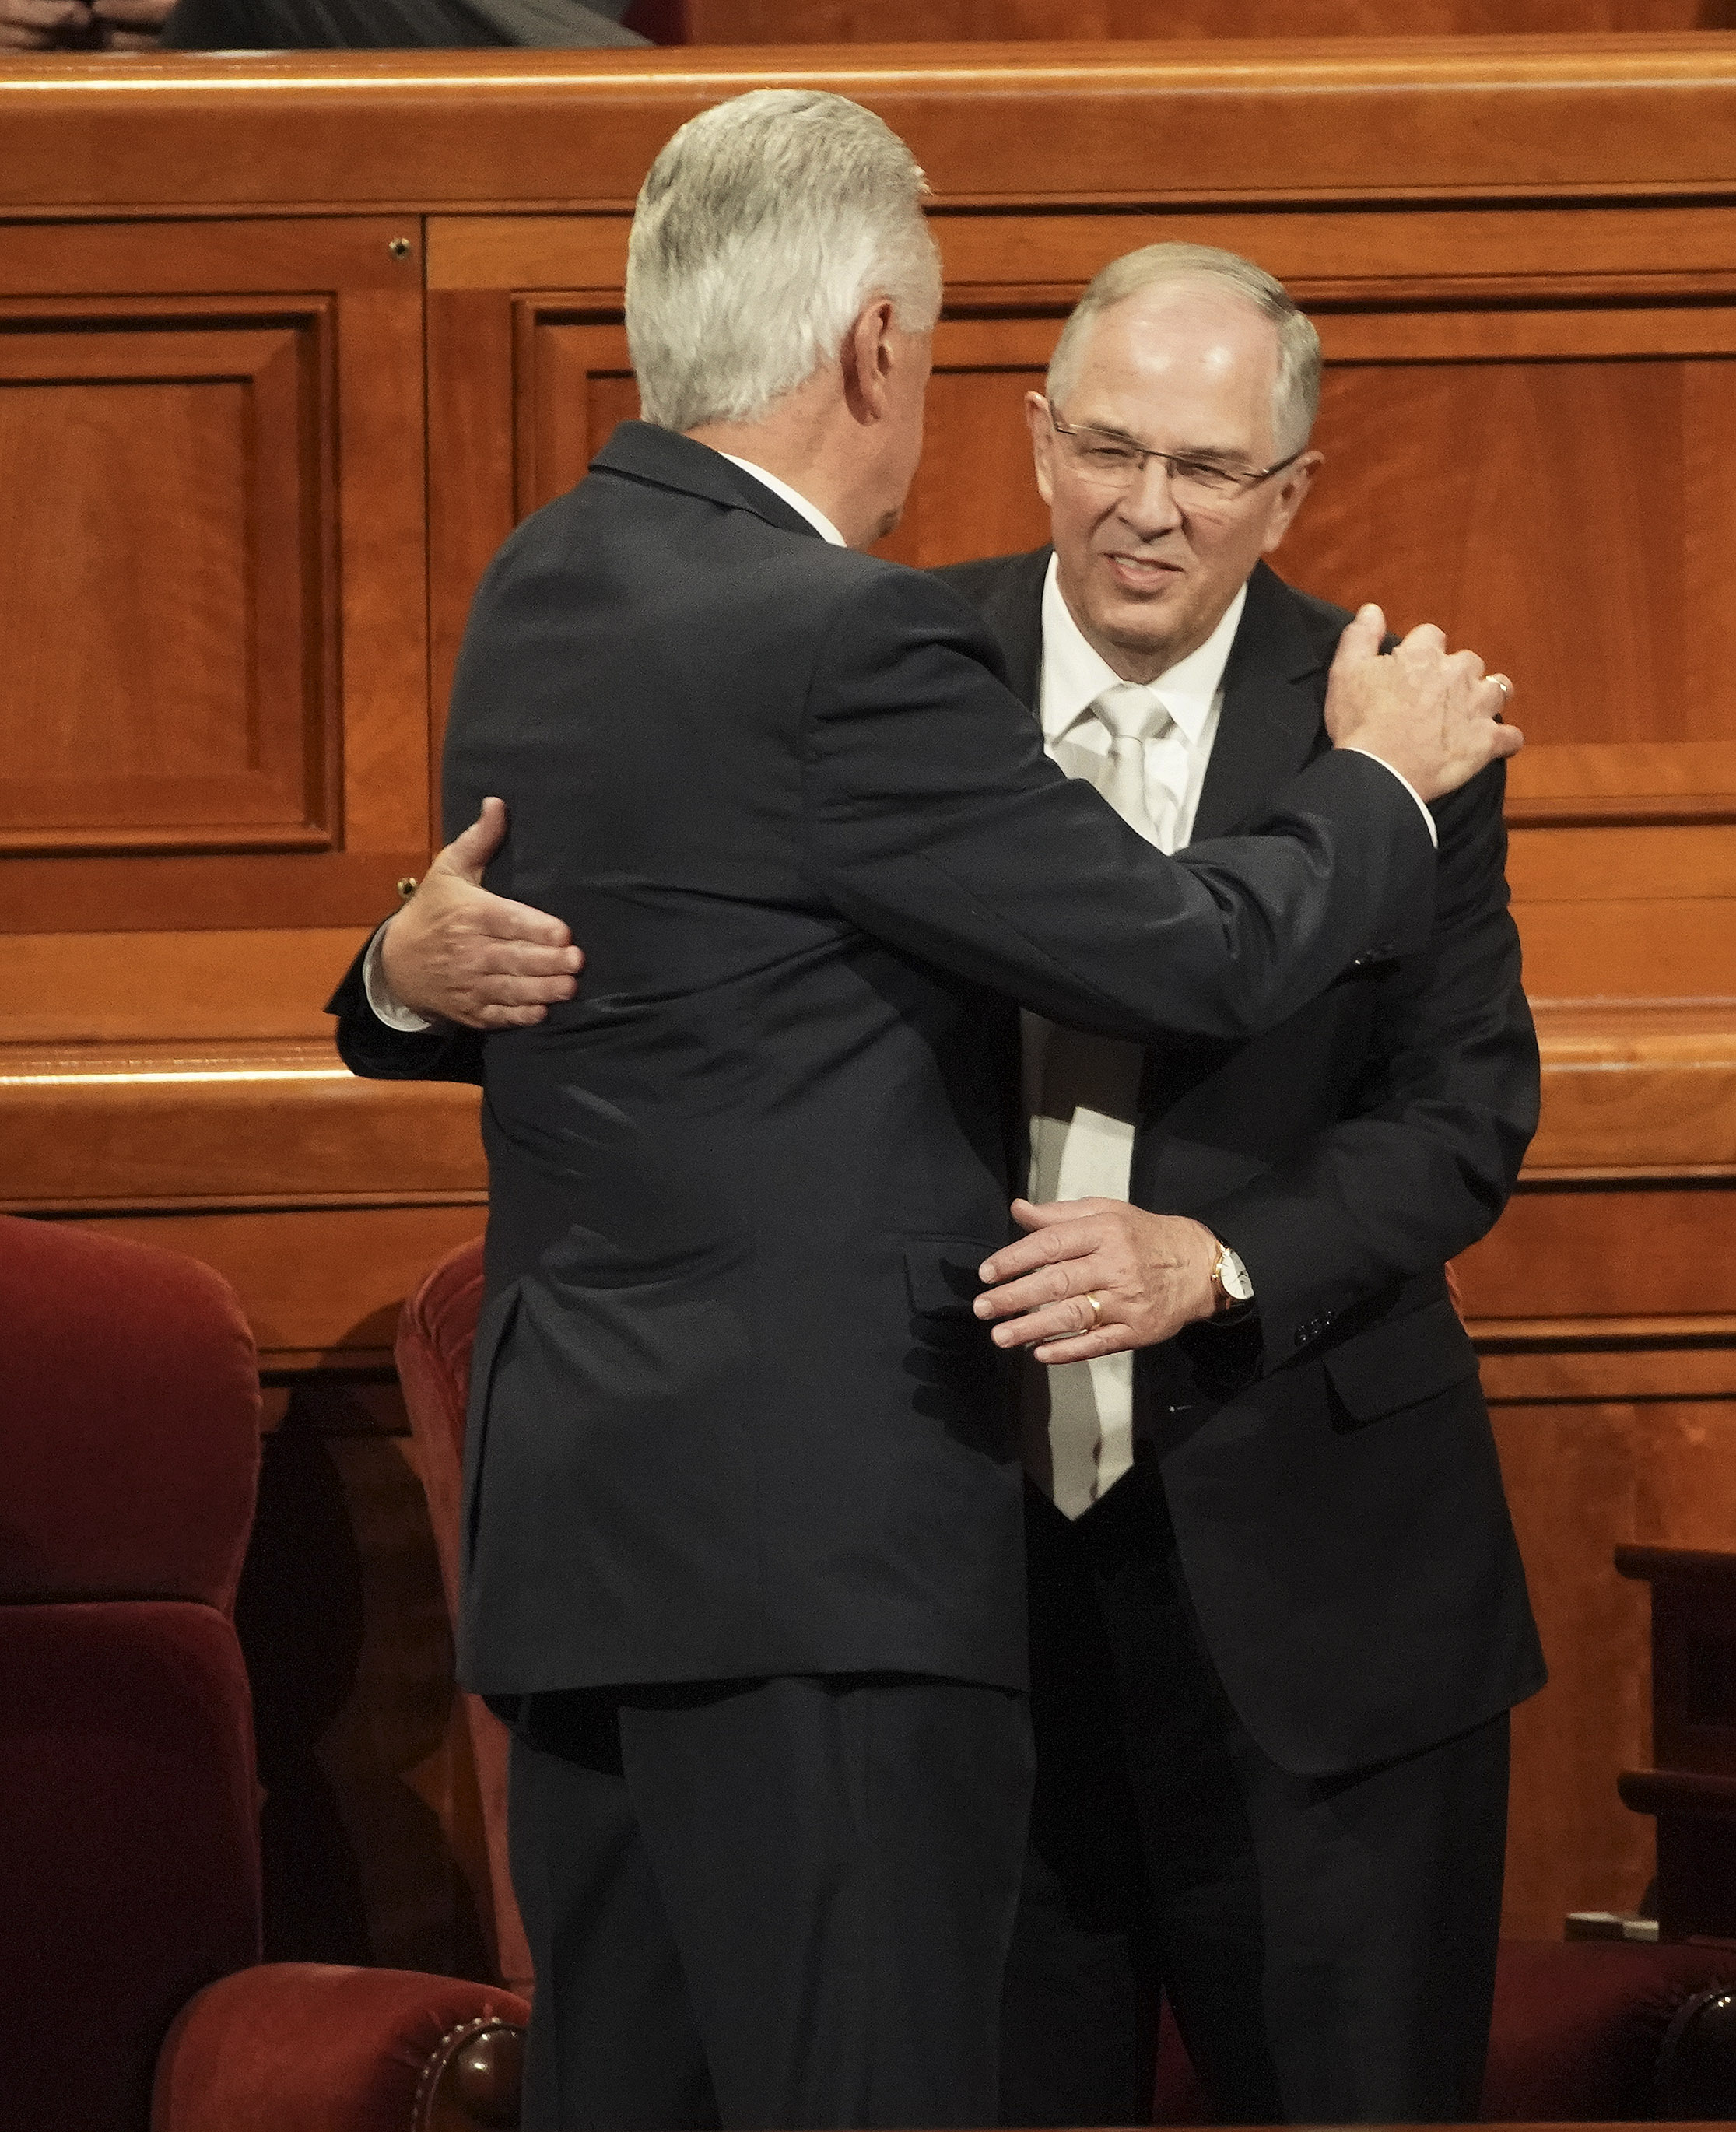 Elder Dieter F. Uchtdorf and Elder Neil L. Andersen of the Quorum of the Twelve Apostles, hug prior to the Saturday afternoon session of the 189th Semiannual General Conference of The Church of Jesus Christ of Latter-day Saints in the Conference Center in Salt Lake City on Saturday, Oct. 5, 2019.